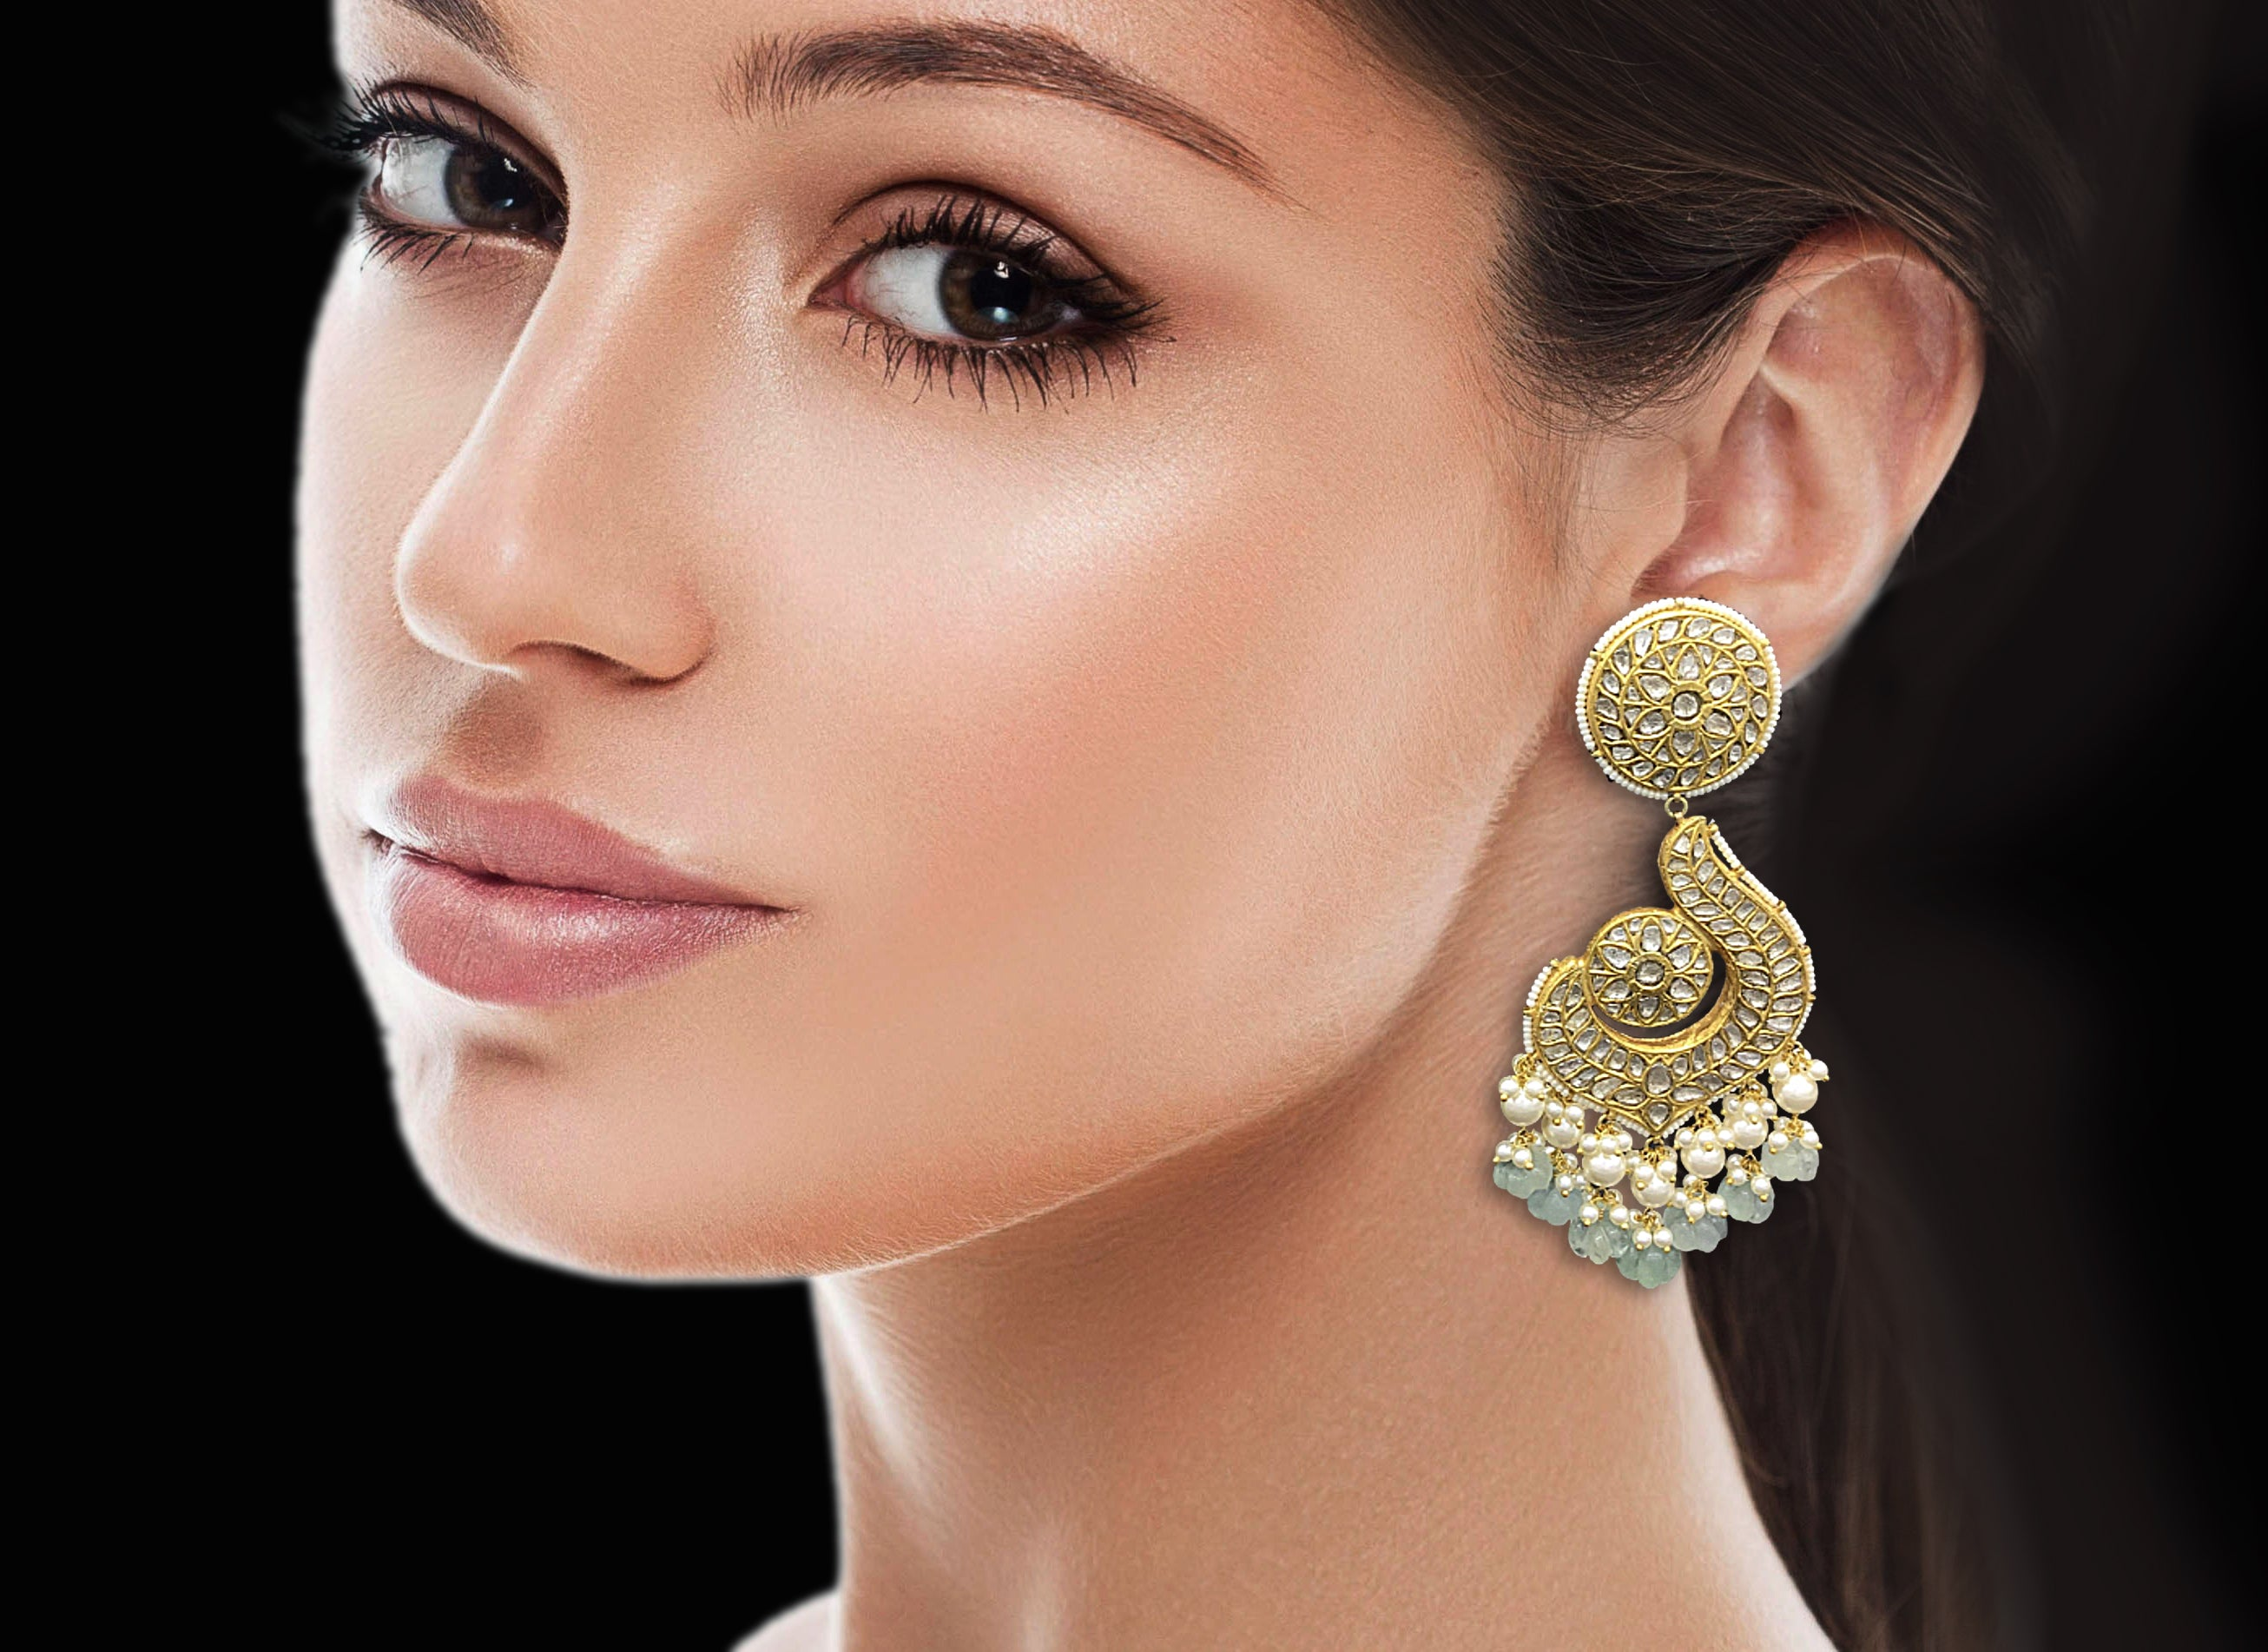 23k Gold and Diamond Polki Chand Bali Earring Pair with Green Fluorite Melons